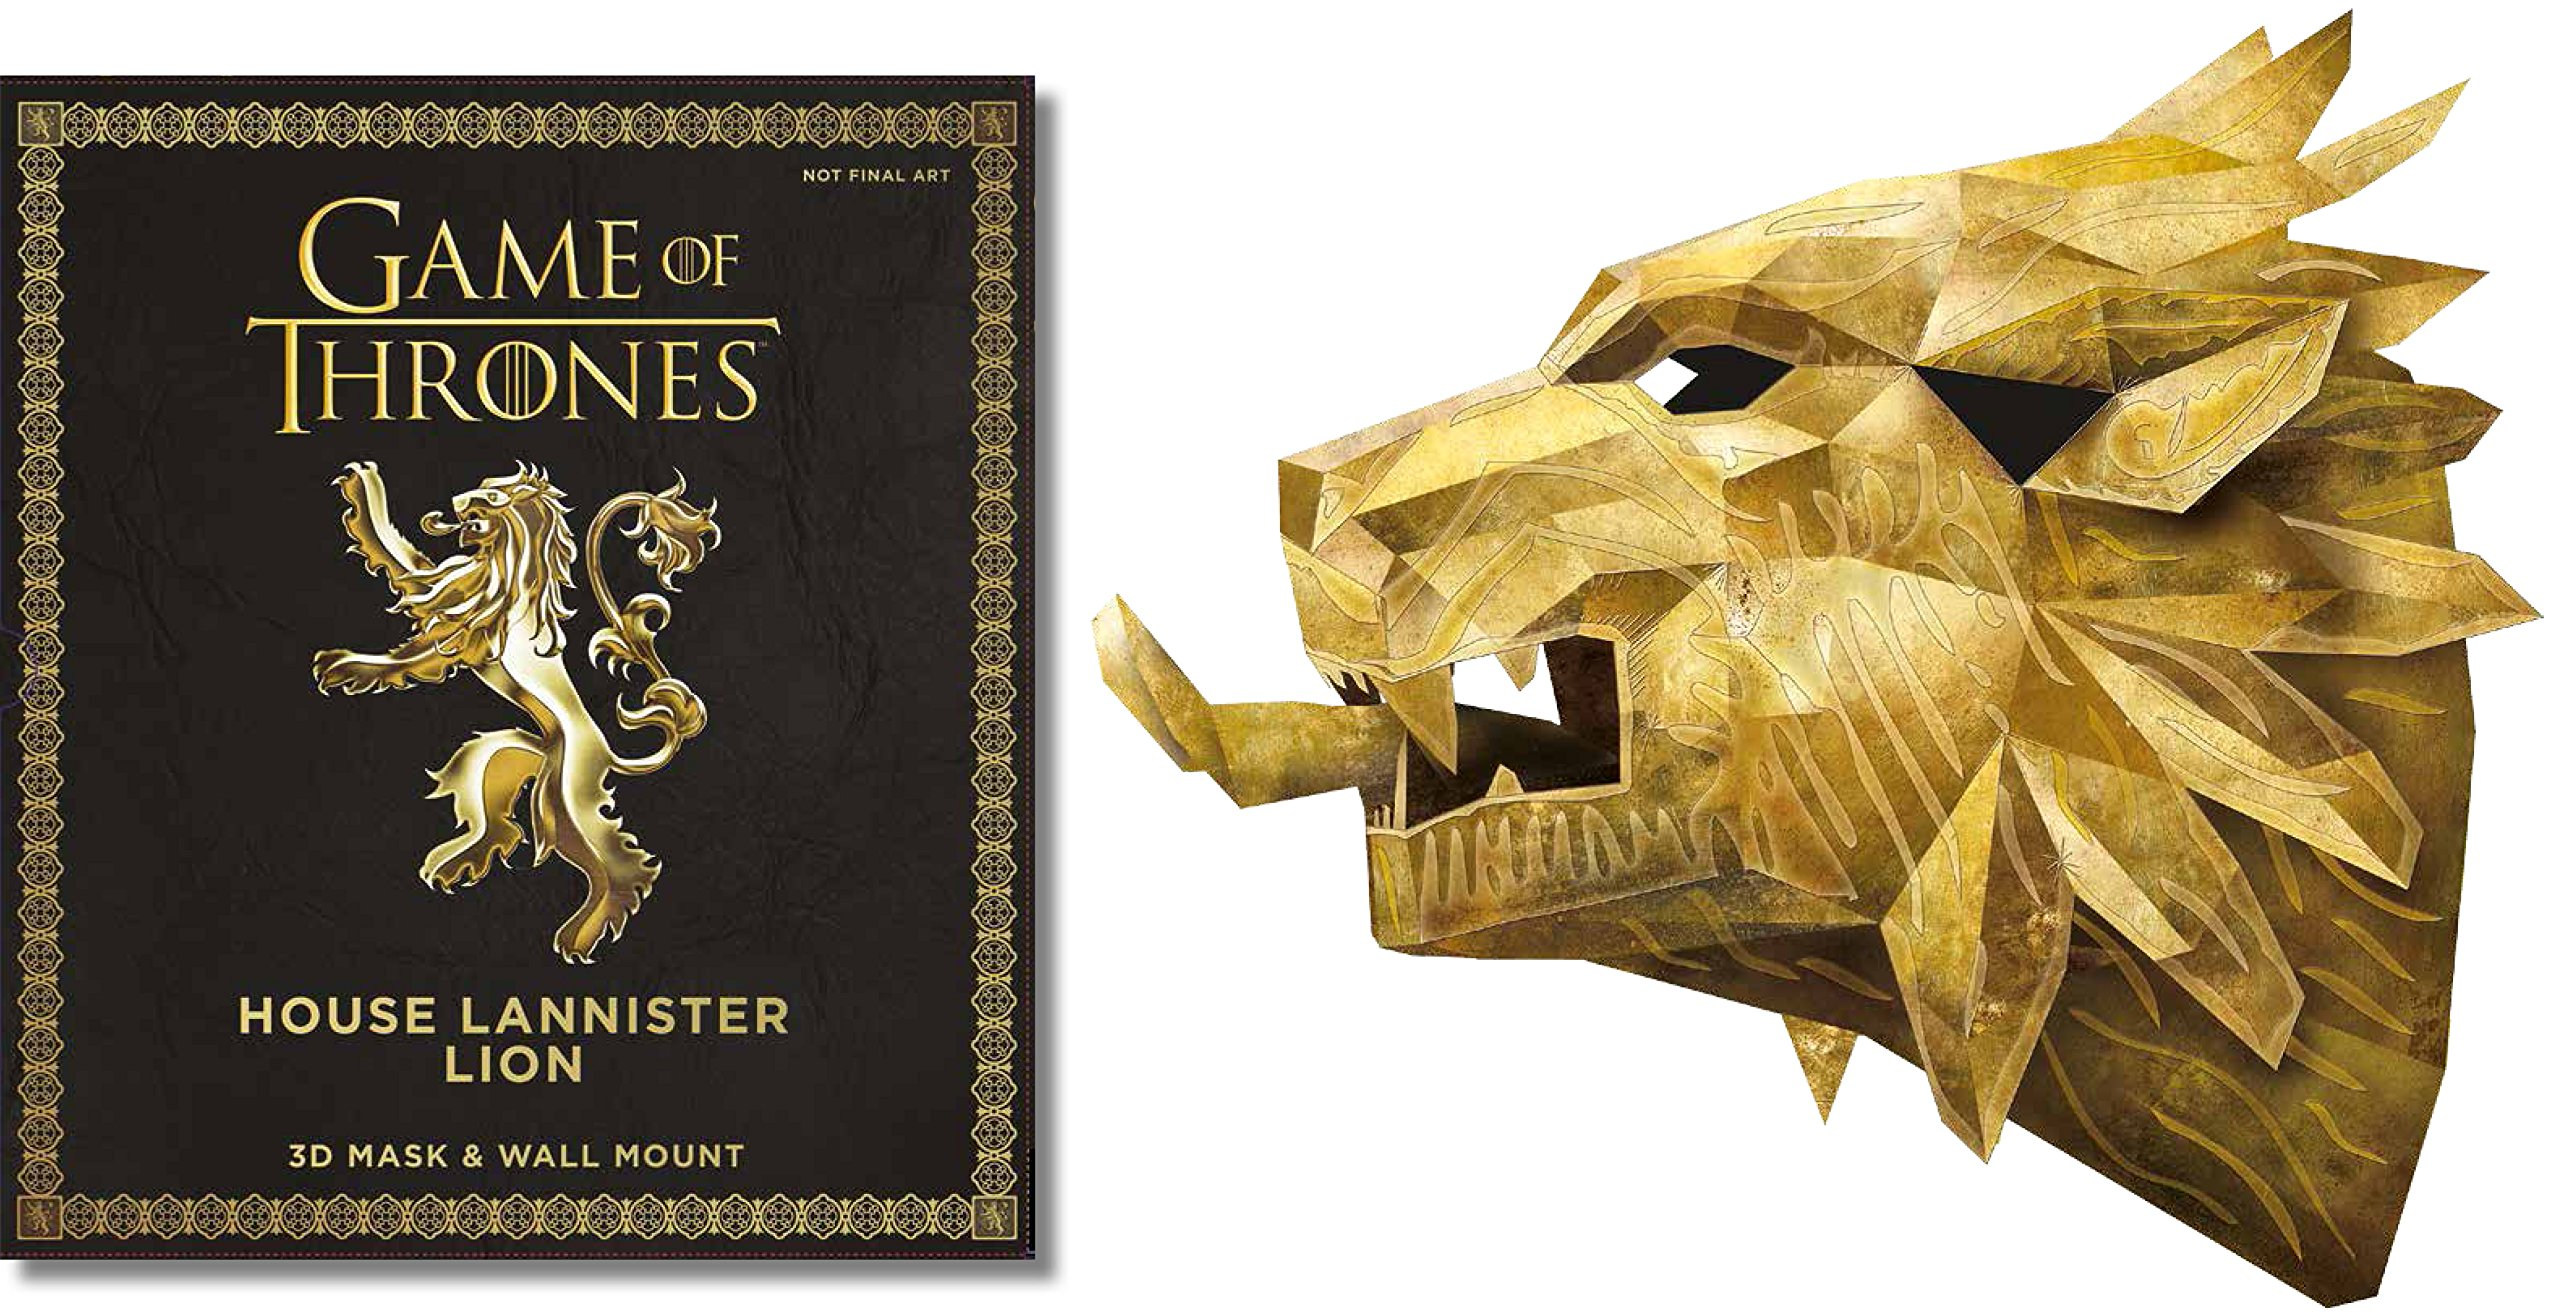 Game Of Thrones Mask House Lannister Lion Amazon Com Br